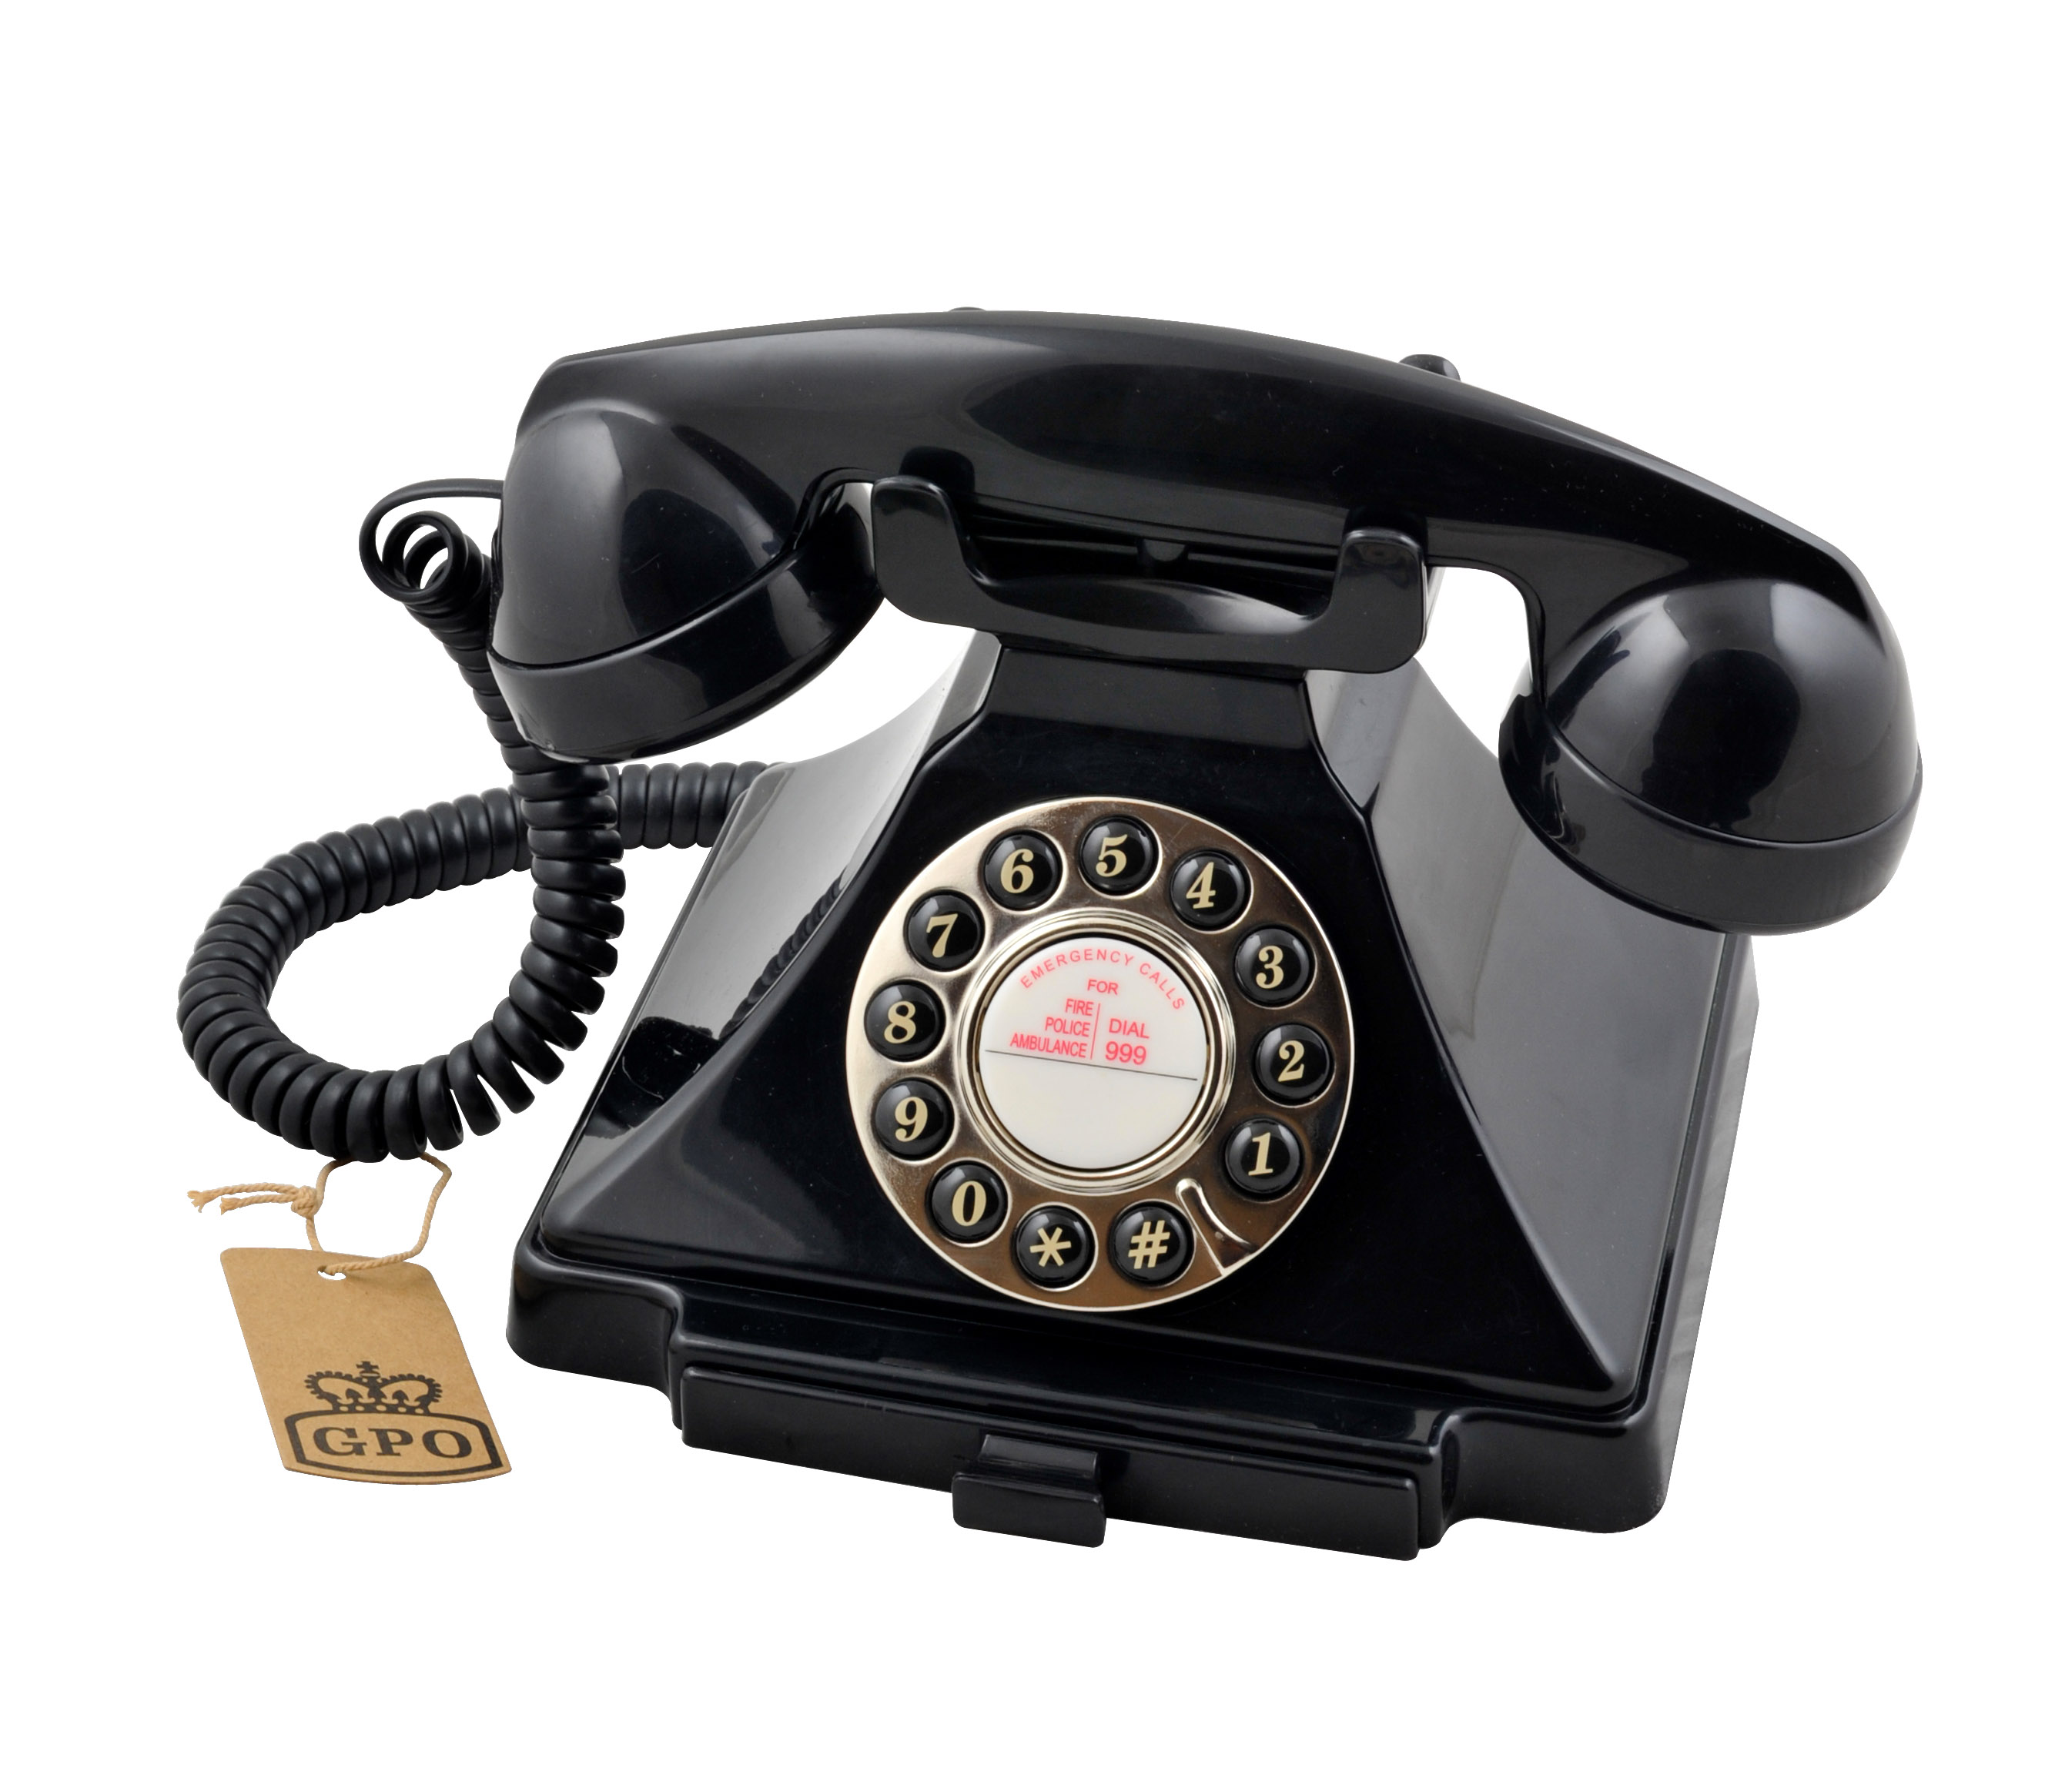 GPO Carrington Retrotelefon